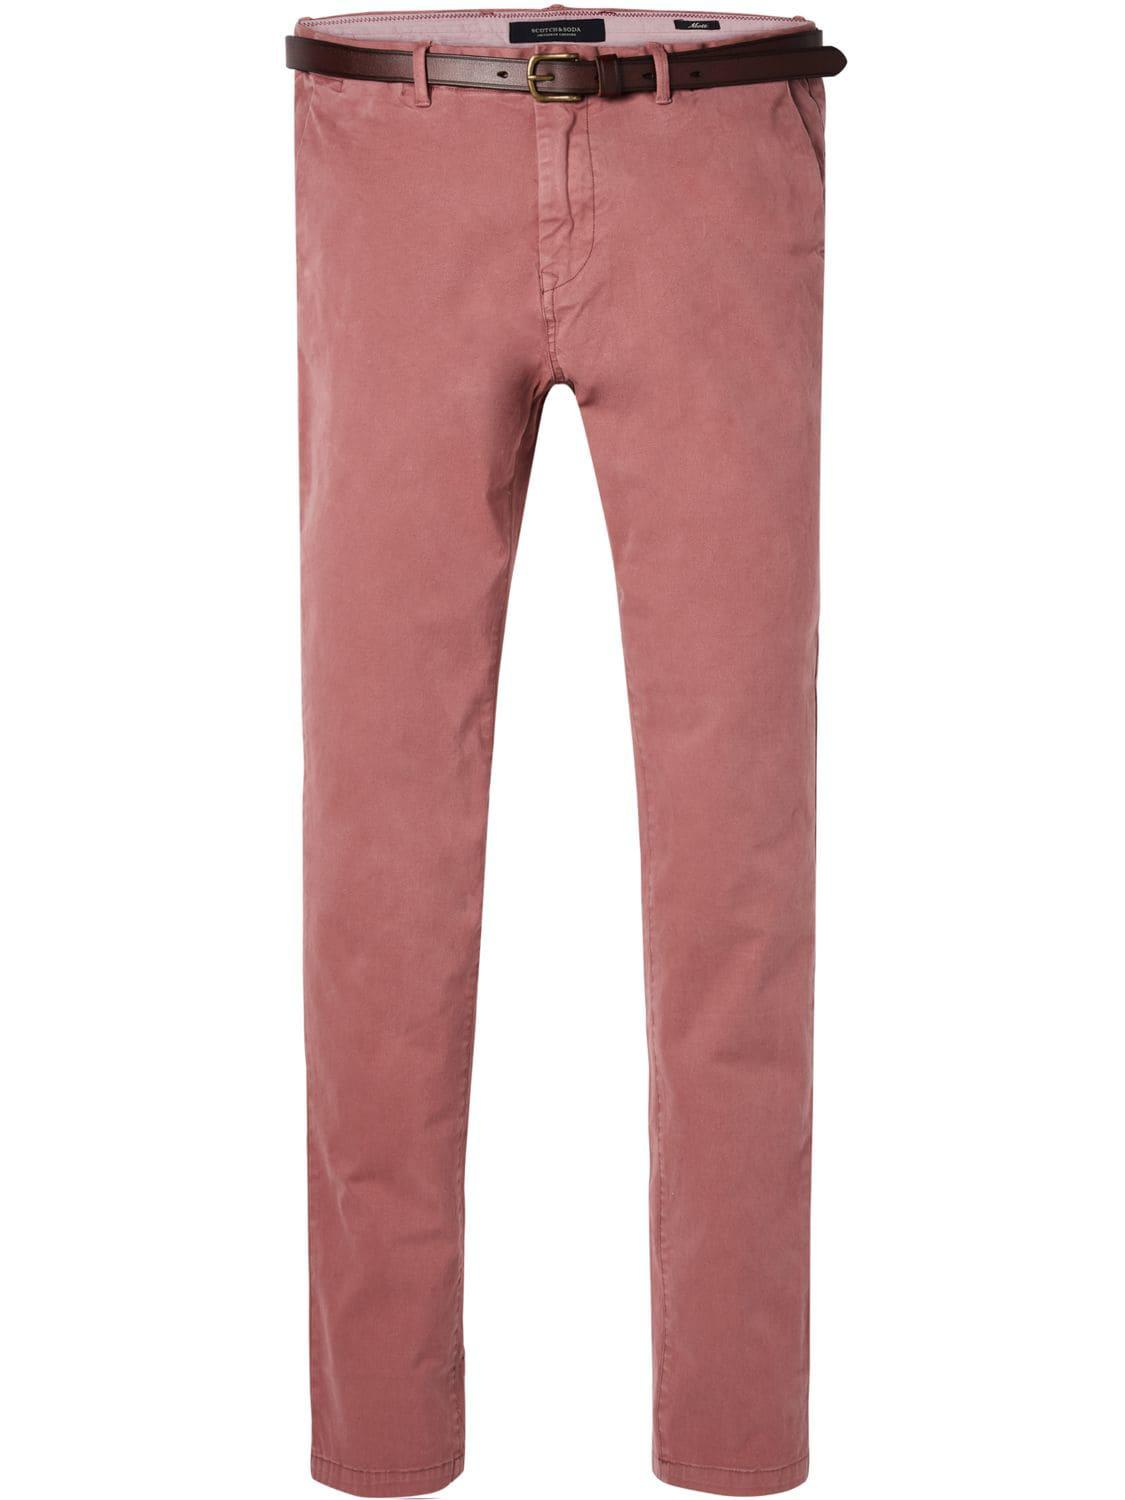 Hommes Mott-stretch Chinos De Coton Pantalon Décontracté Scotch & Soda w4OWym2Ts